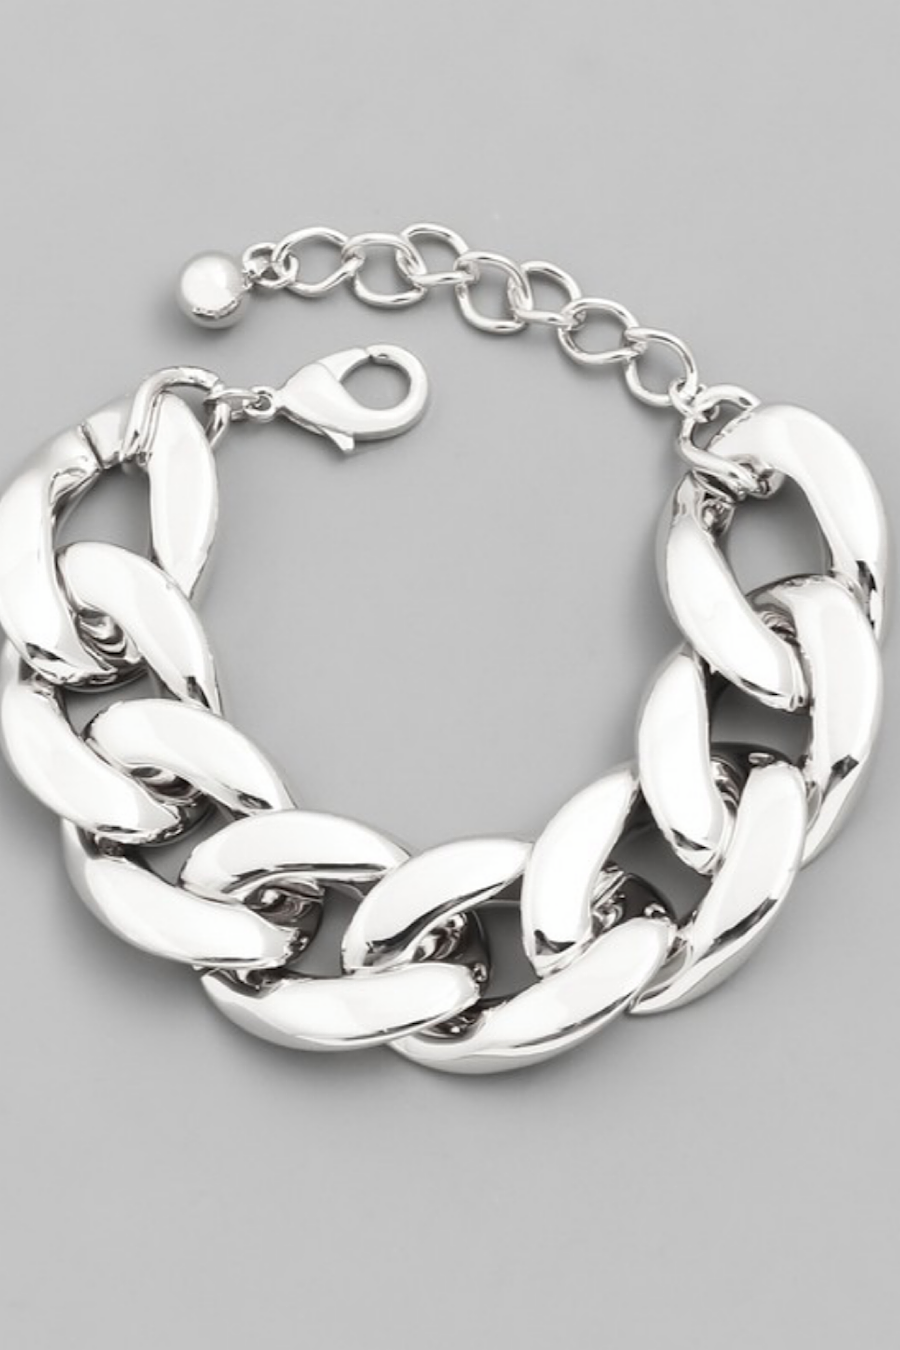 Chunky Chain Link Bracelet in Gold or Silver